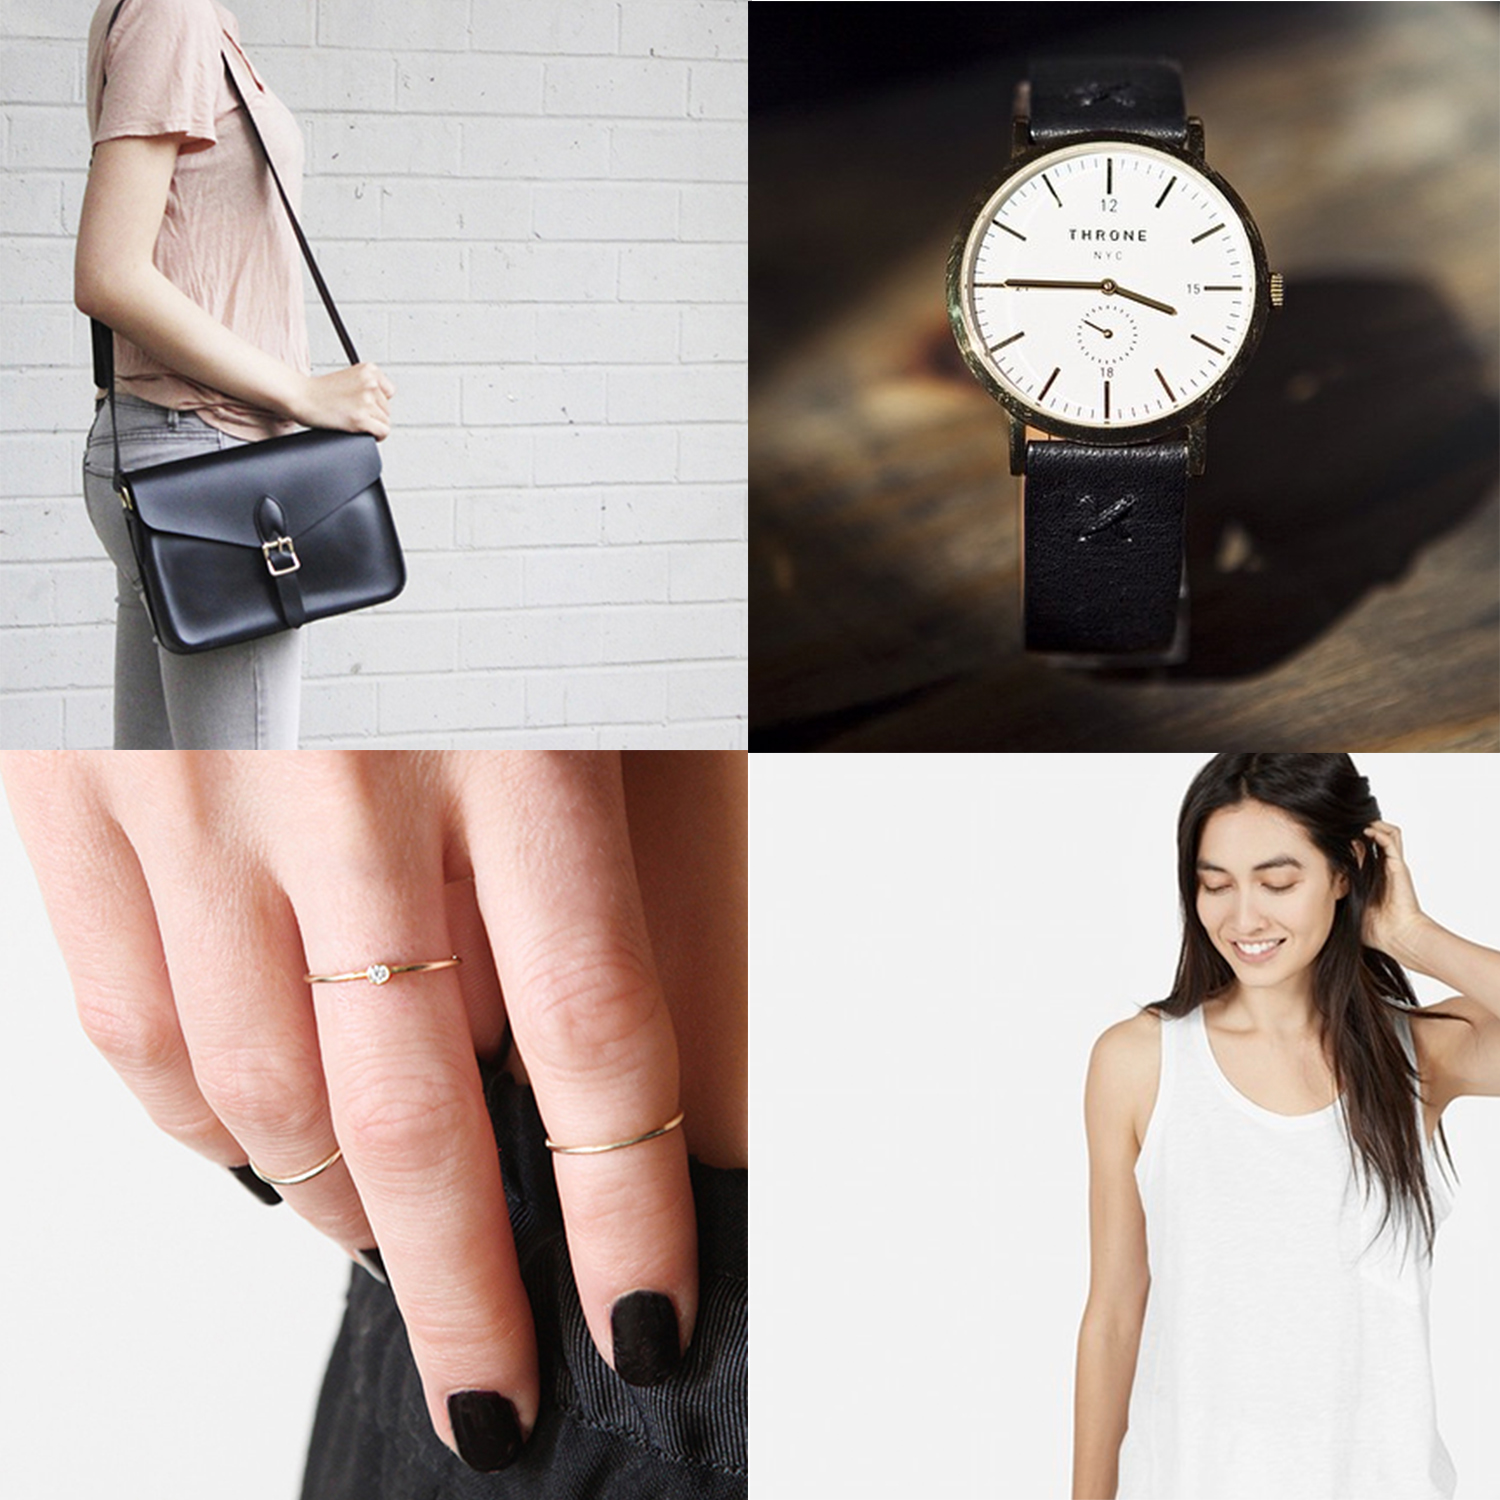 Top Row: left: Angela Roi, Right: Throne Watches. Bottom Row: left: Vrai & Oro, Right: Everlane